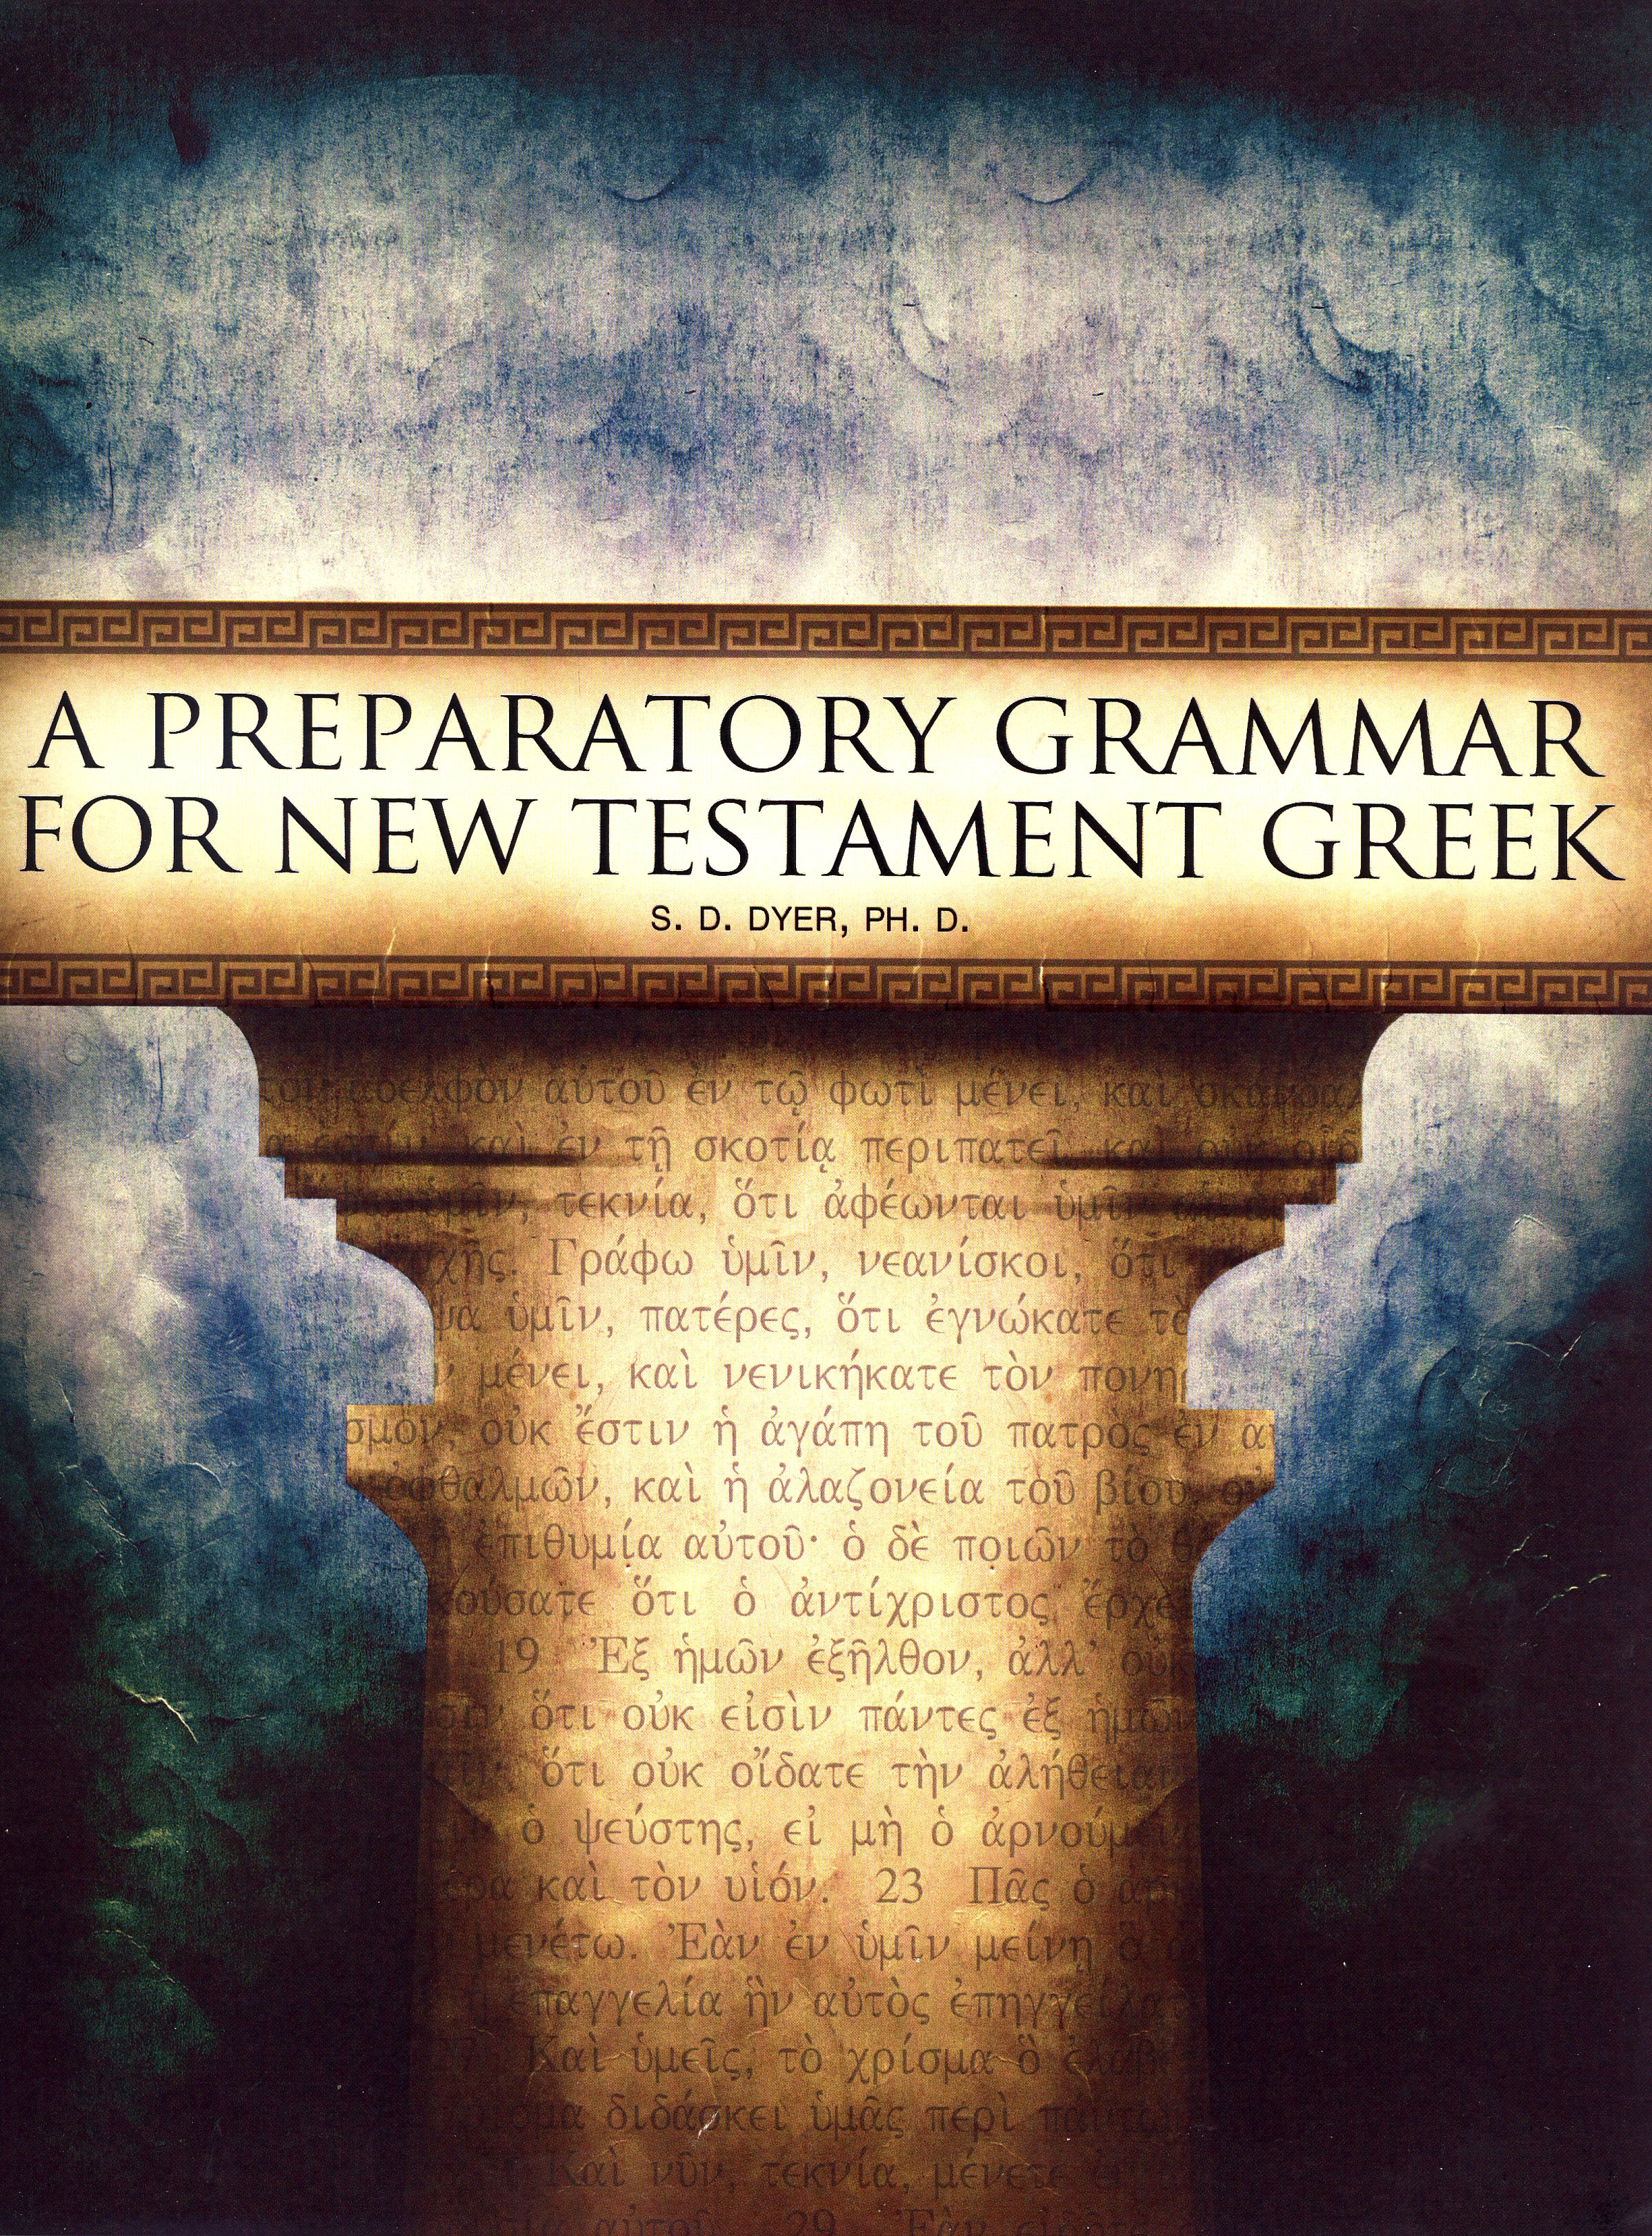 A Preparatory Grammar for New Testament Greek